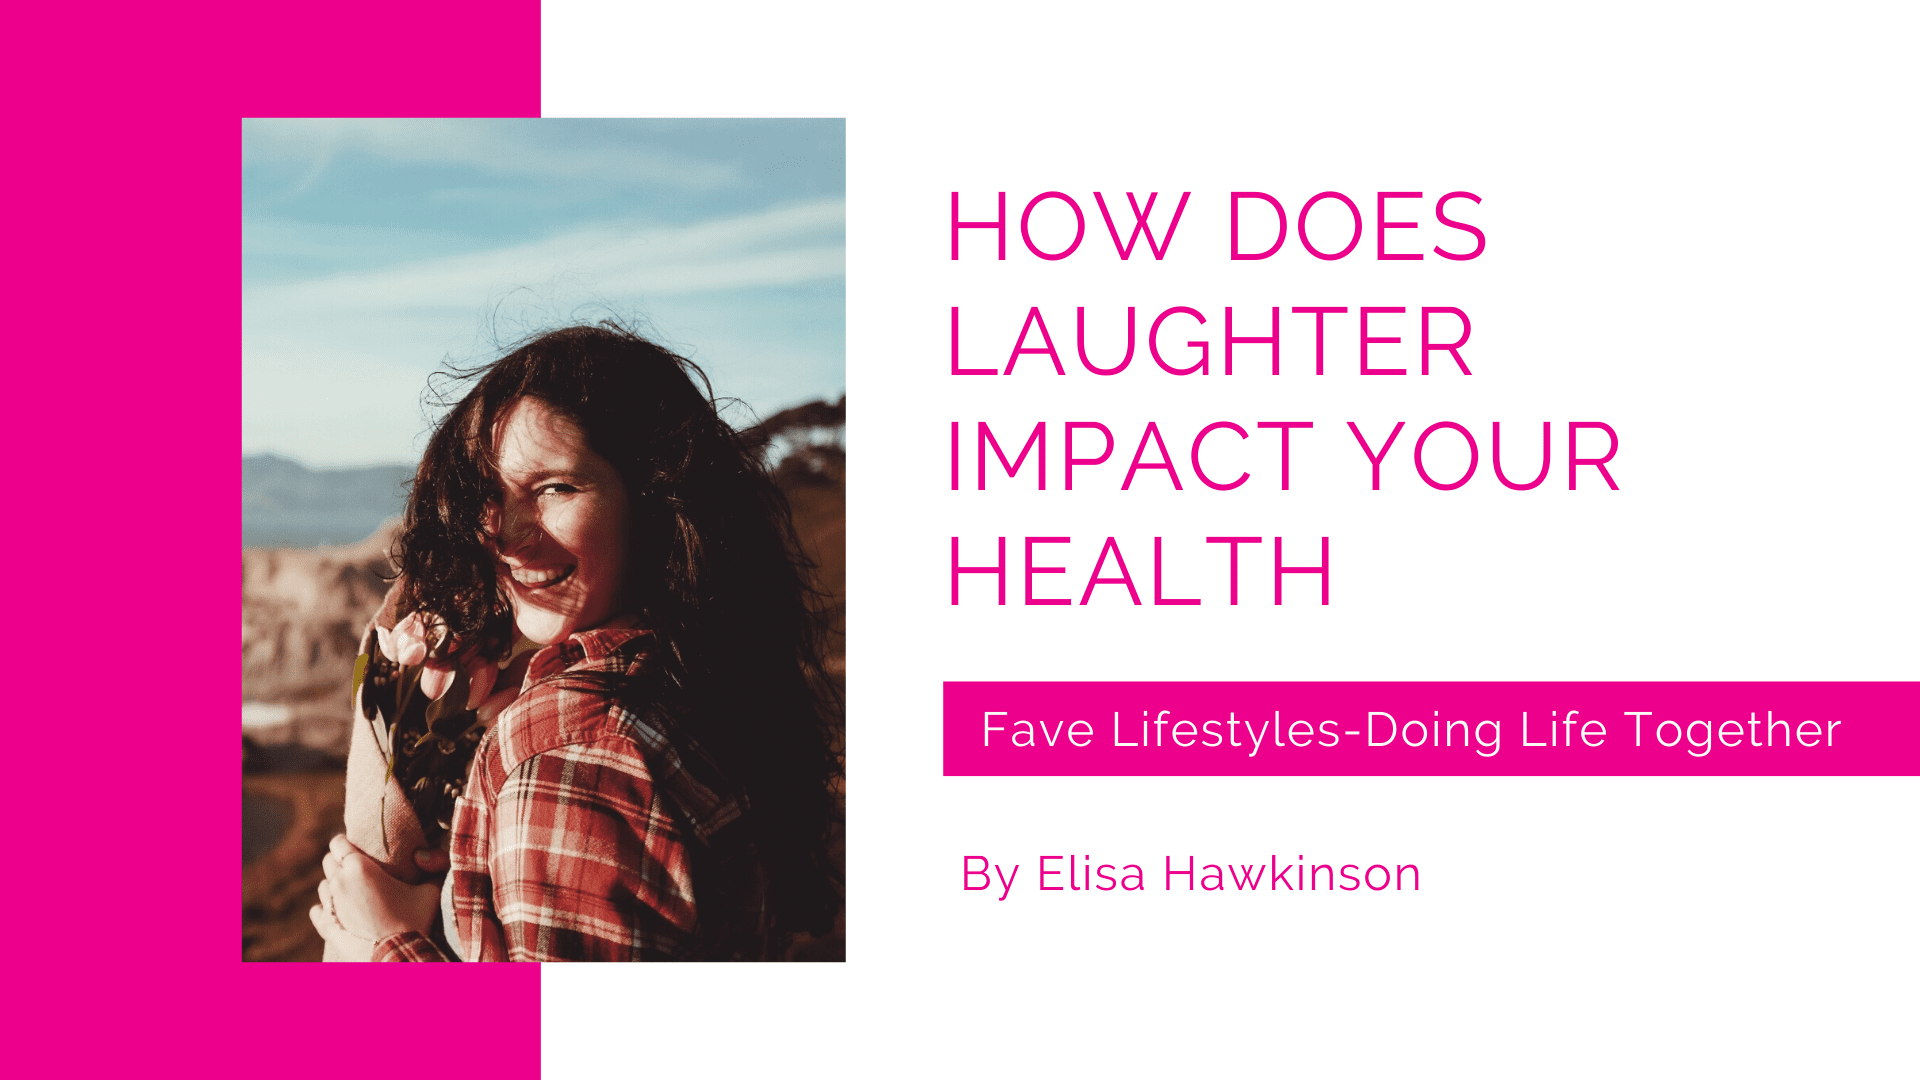 How Does Laughter Impact Your Health?